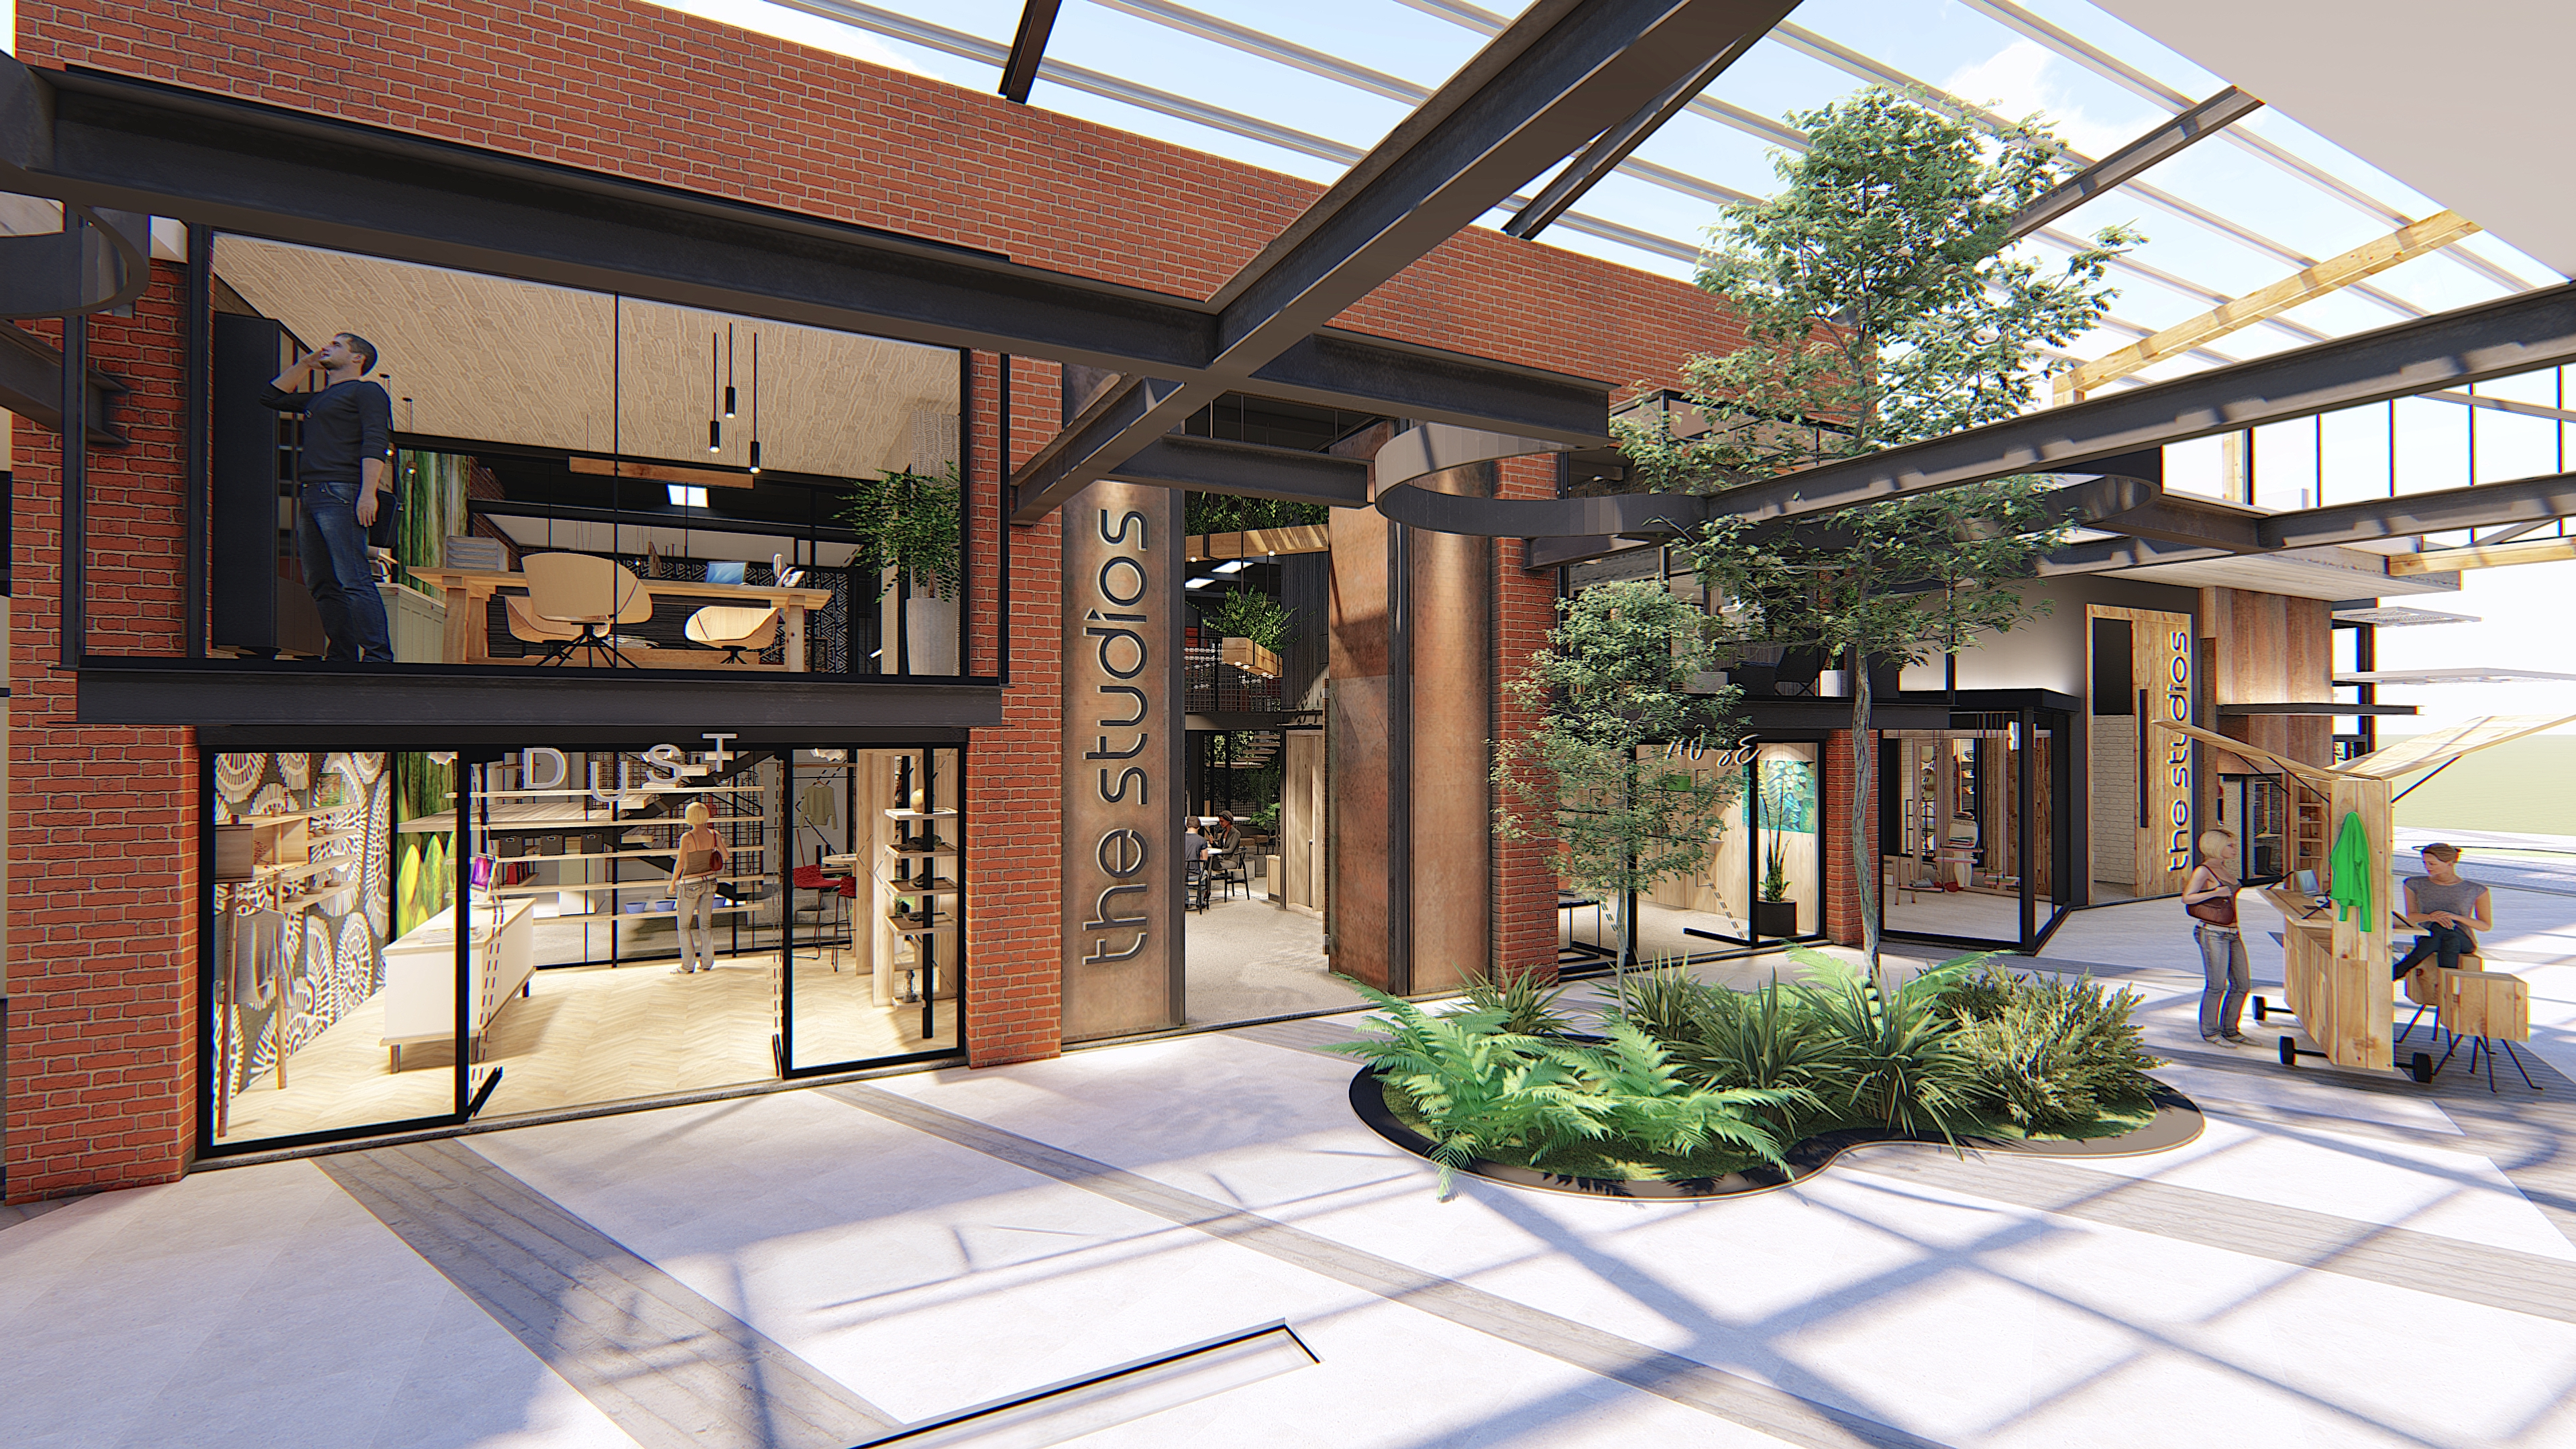 More development on the cards at Lifestyle Centre